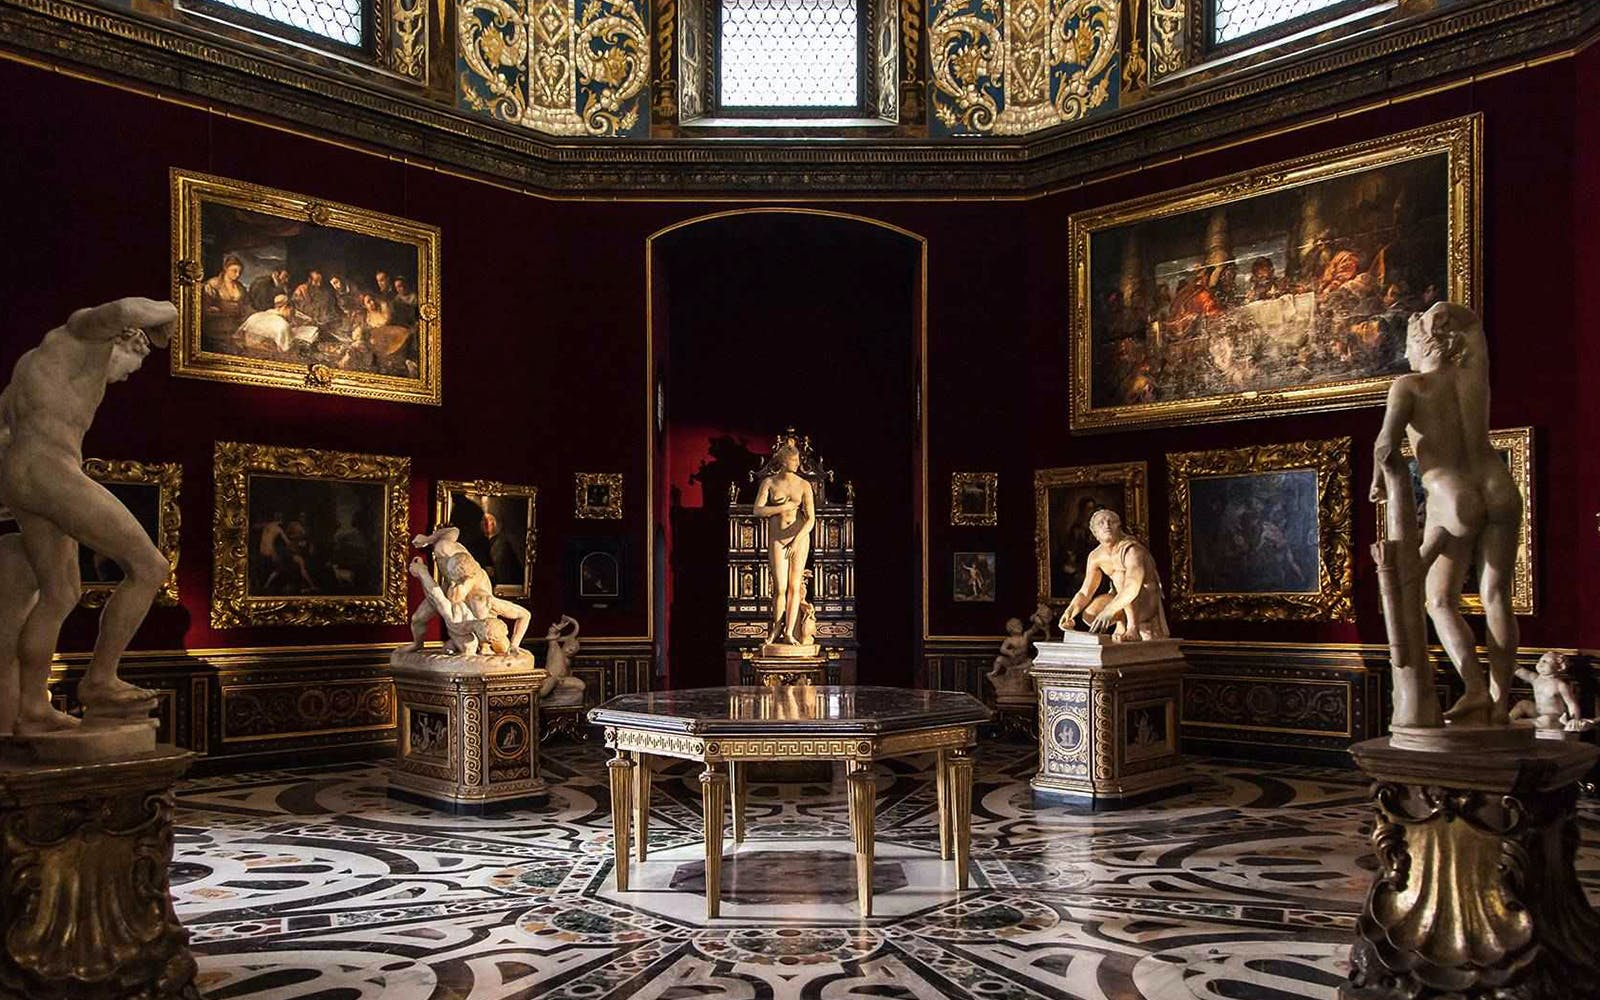 Skip The Line Access to the Uffizi Gallery with Audiopen